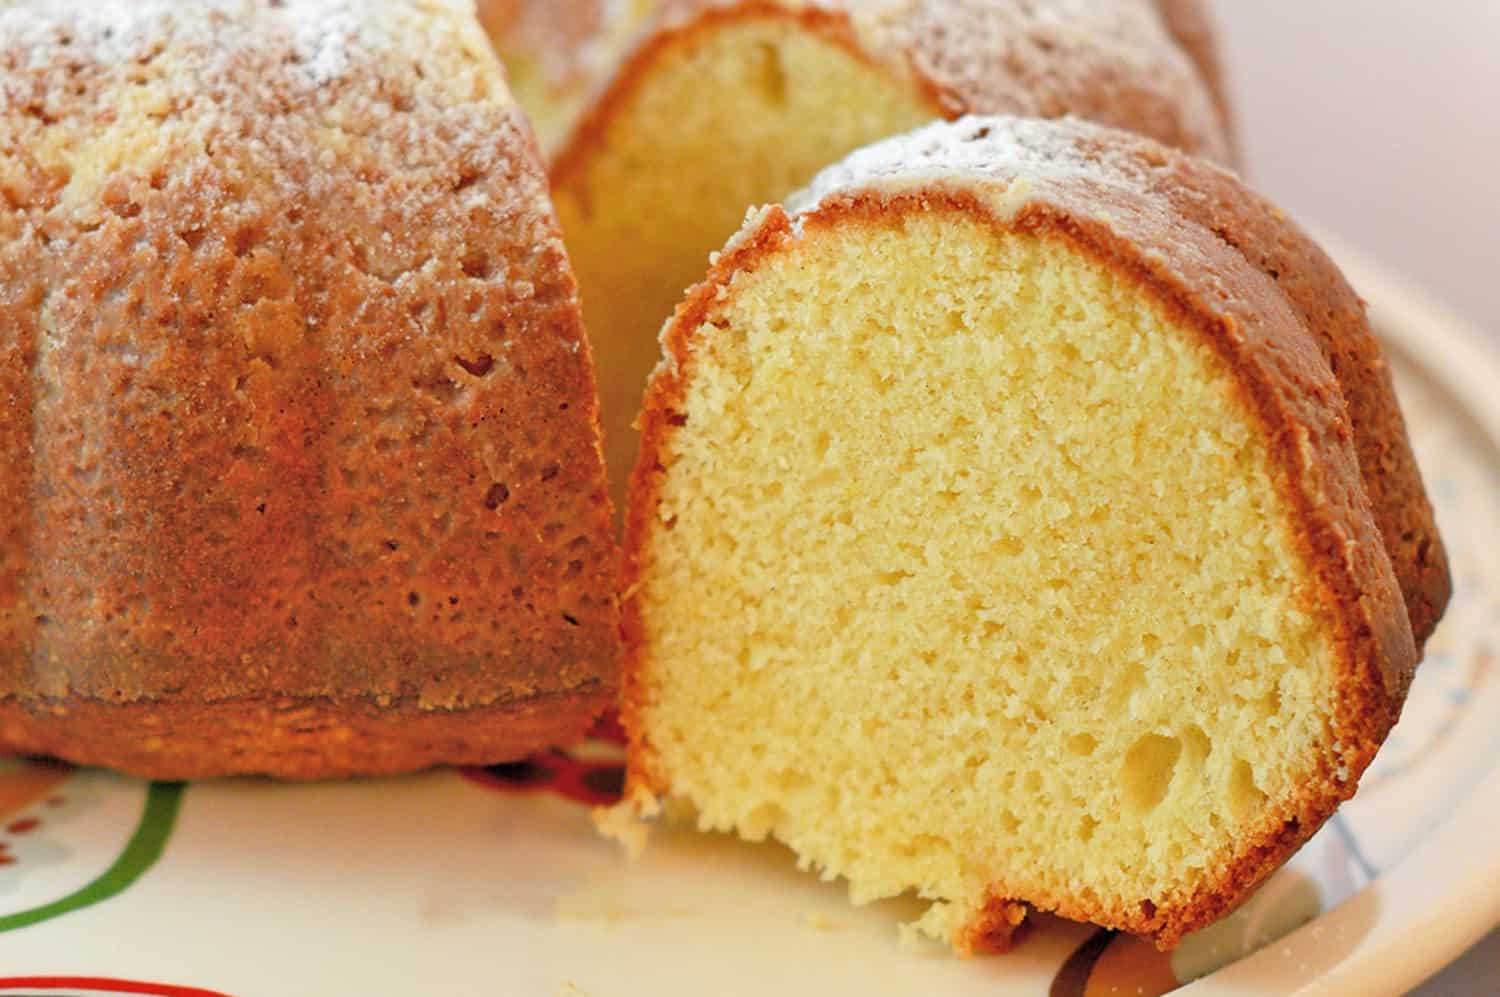 Cardamom Lemon Cake is a light cake and gently flavored. It pairs perfectly with tea, coffee or the grand finale to any meal. The perfect lemon bundt cake! #lemoncake #lemonbundtcake www.savoryexperiments.com